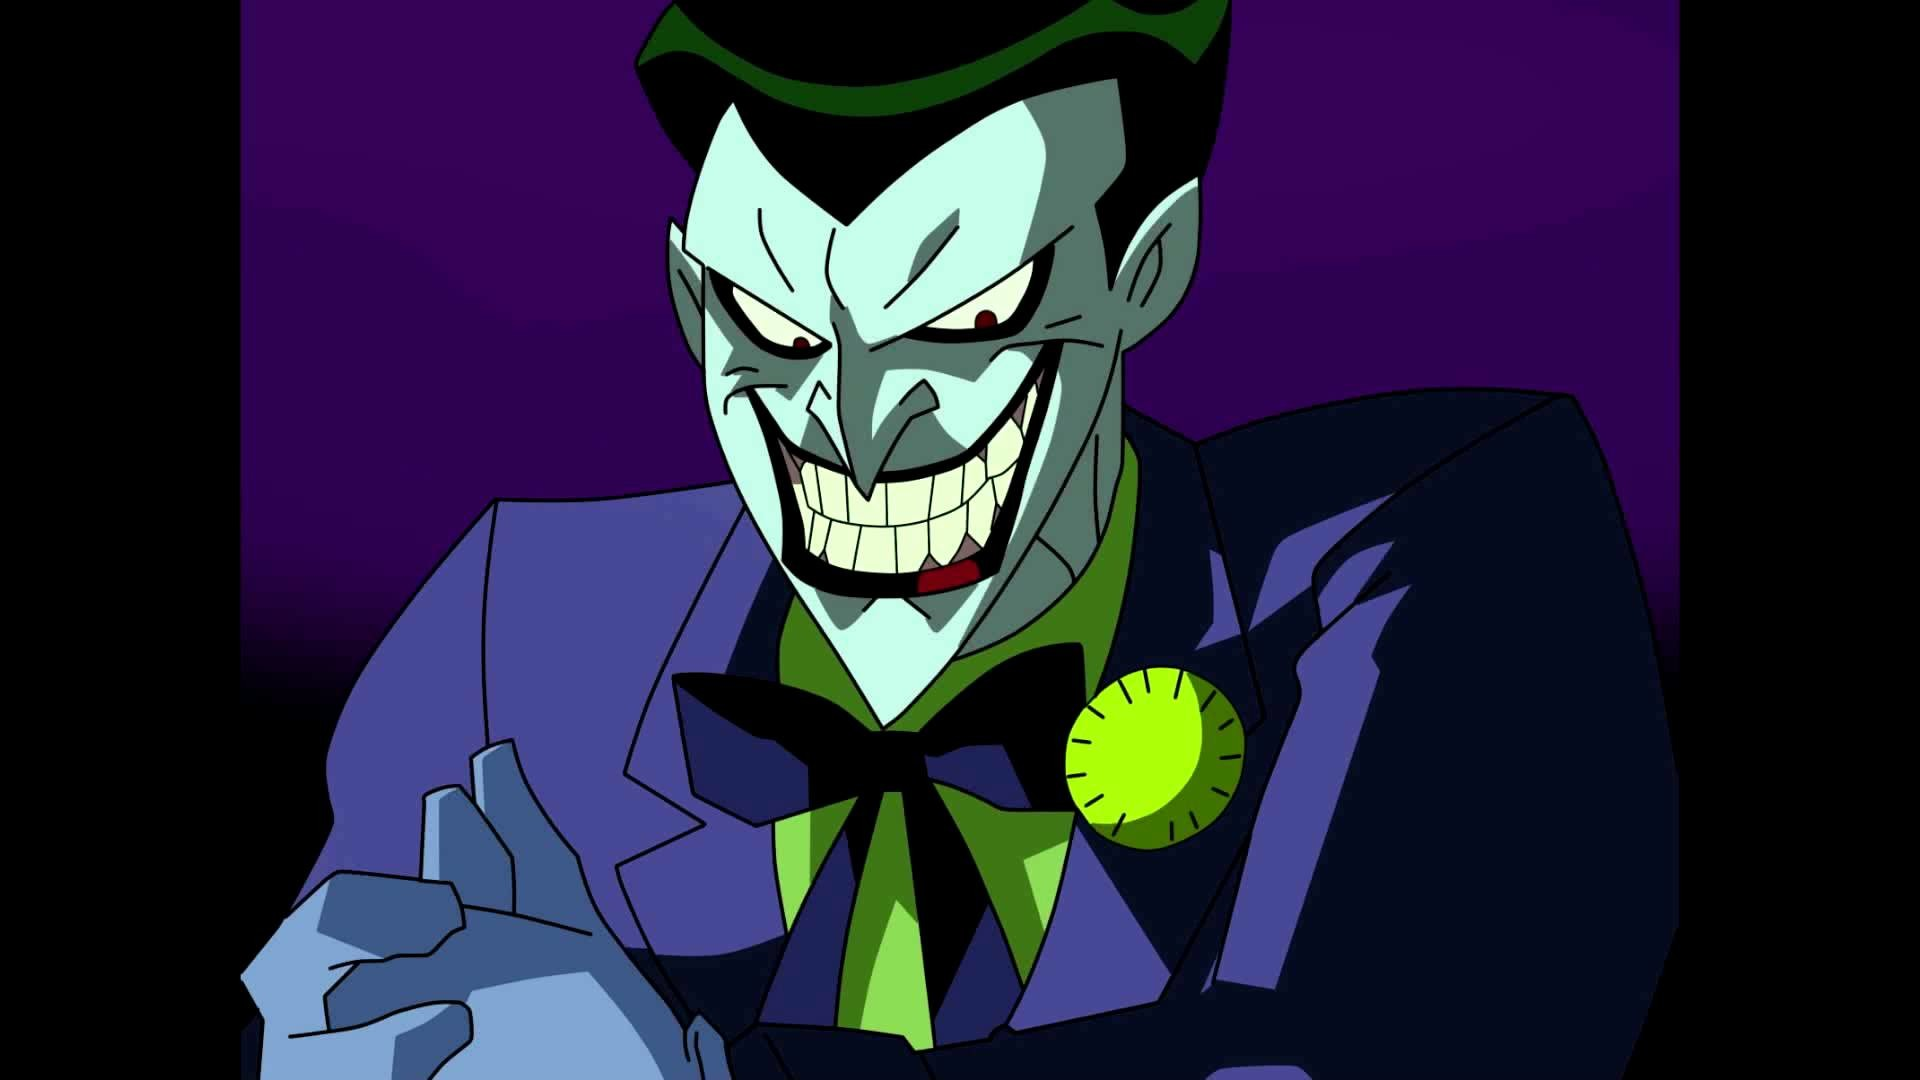 the joker as played by mark hamill